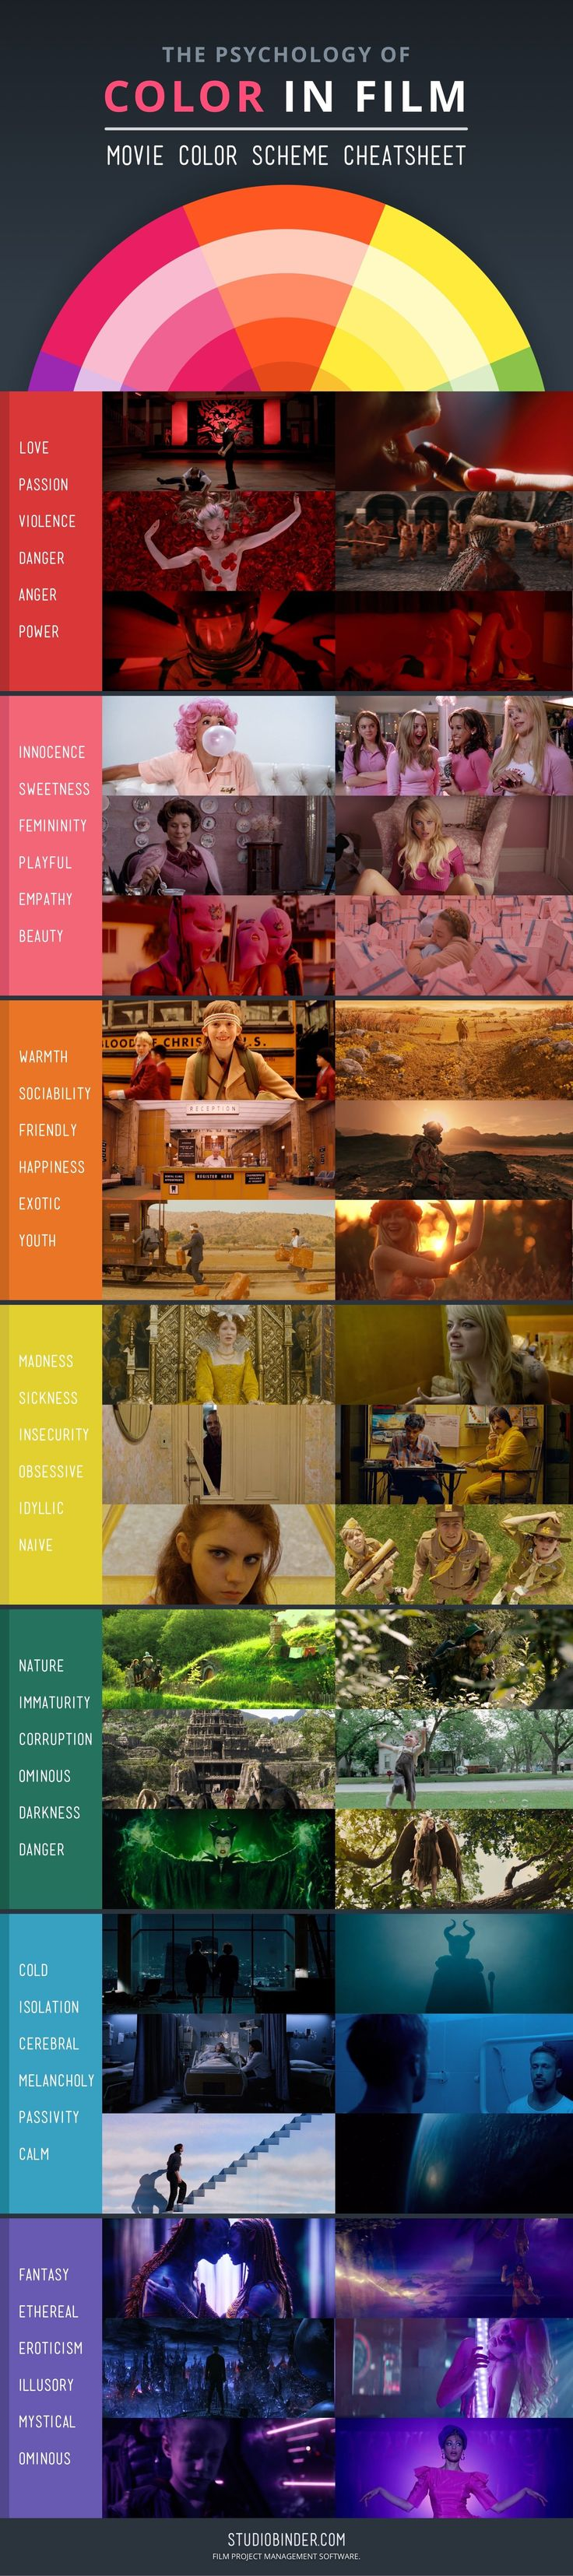 Infographic: The Psychology Of Color In Film, A Color Scheme Cheat Sheet…